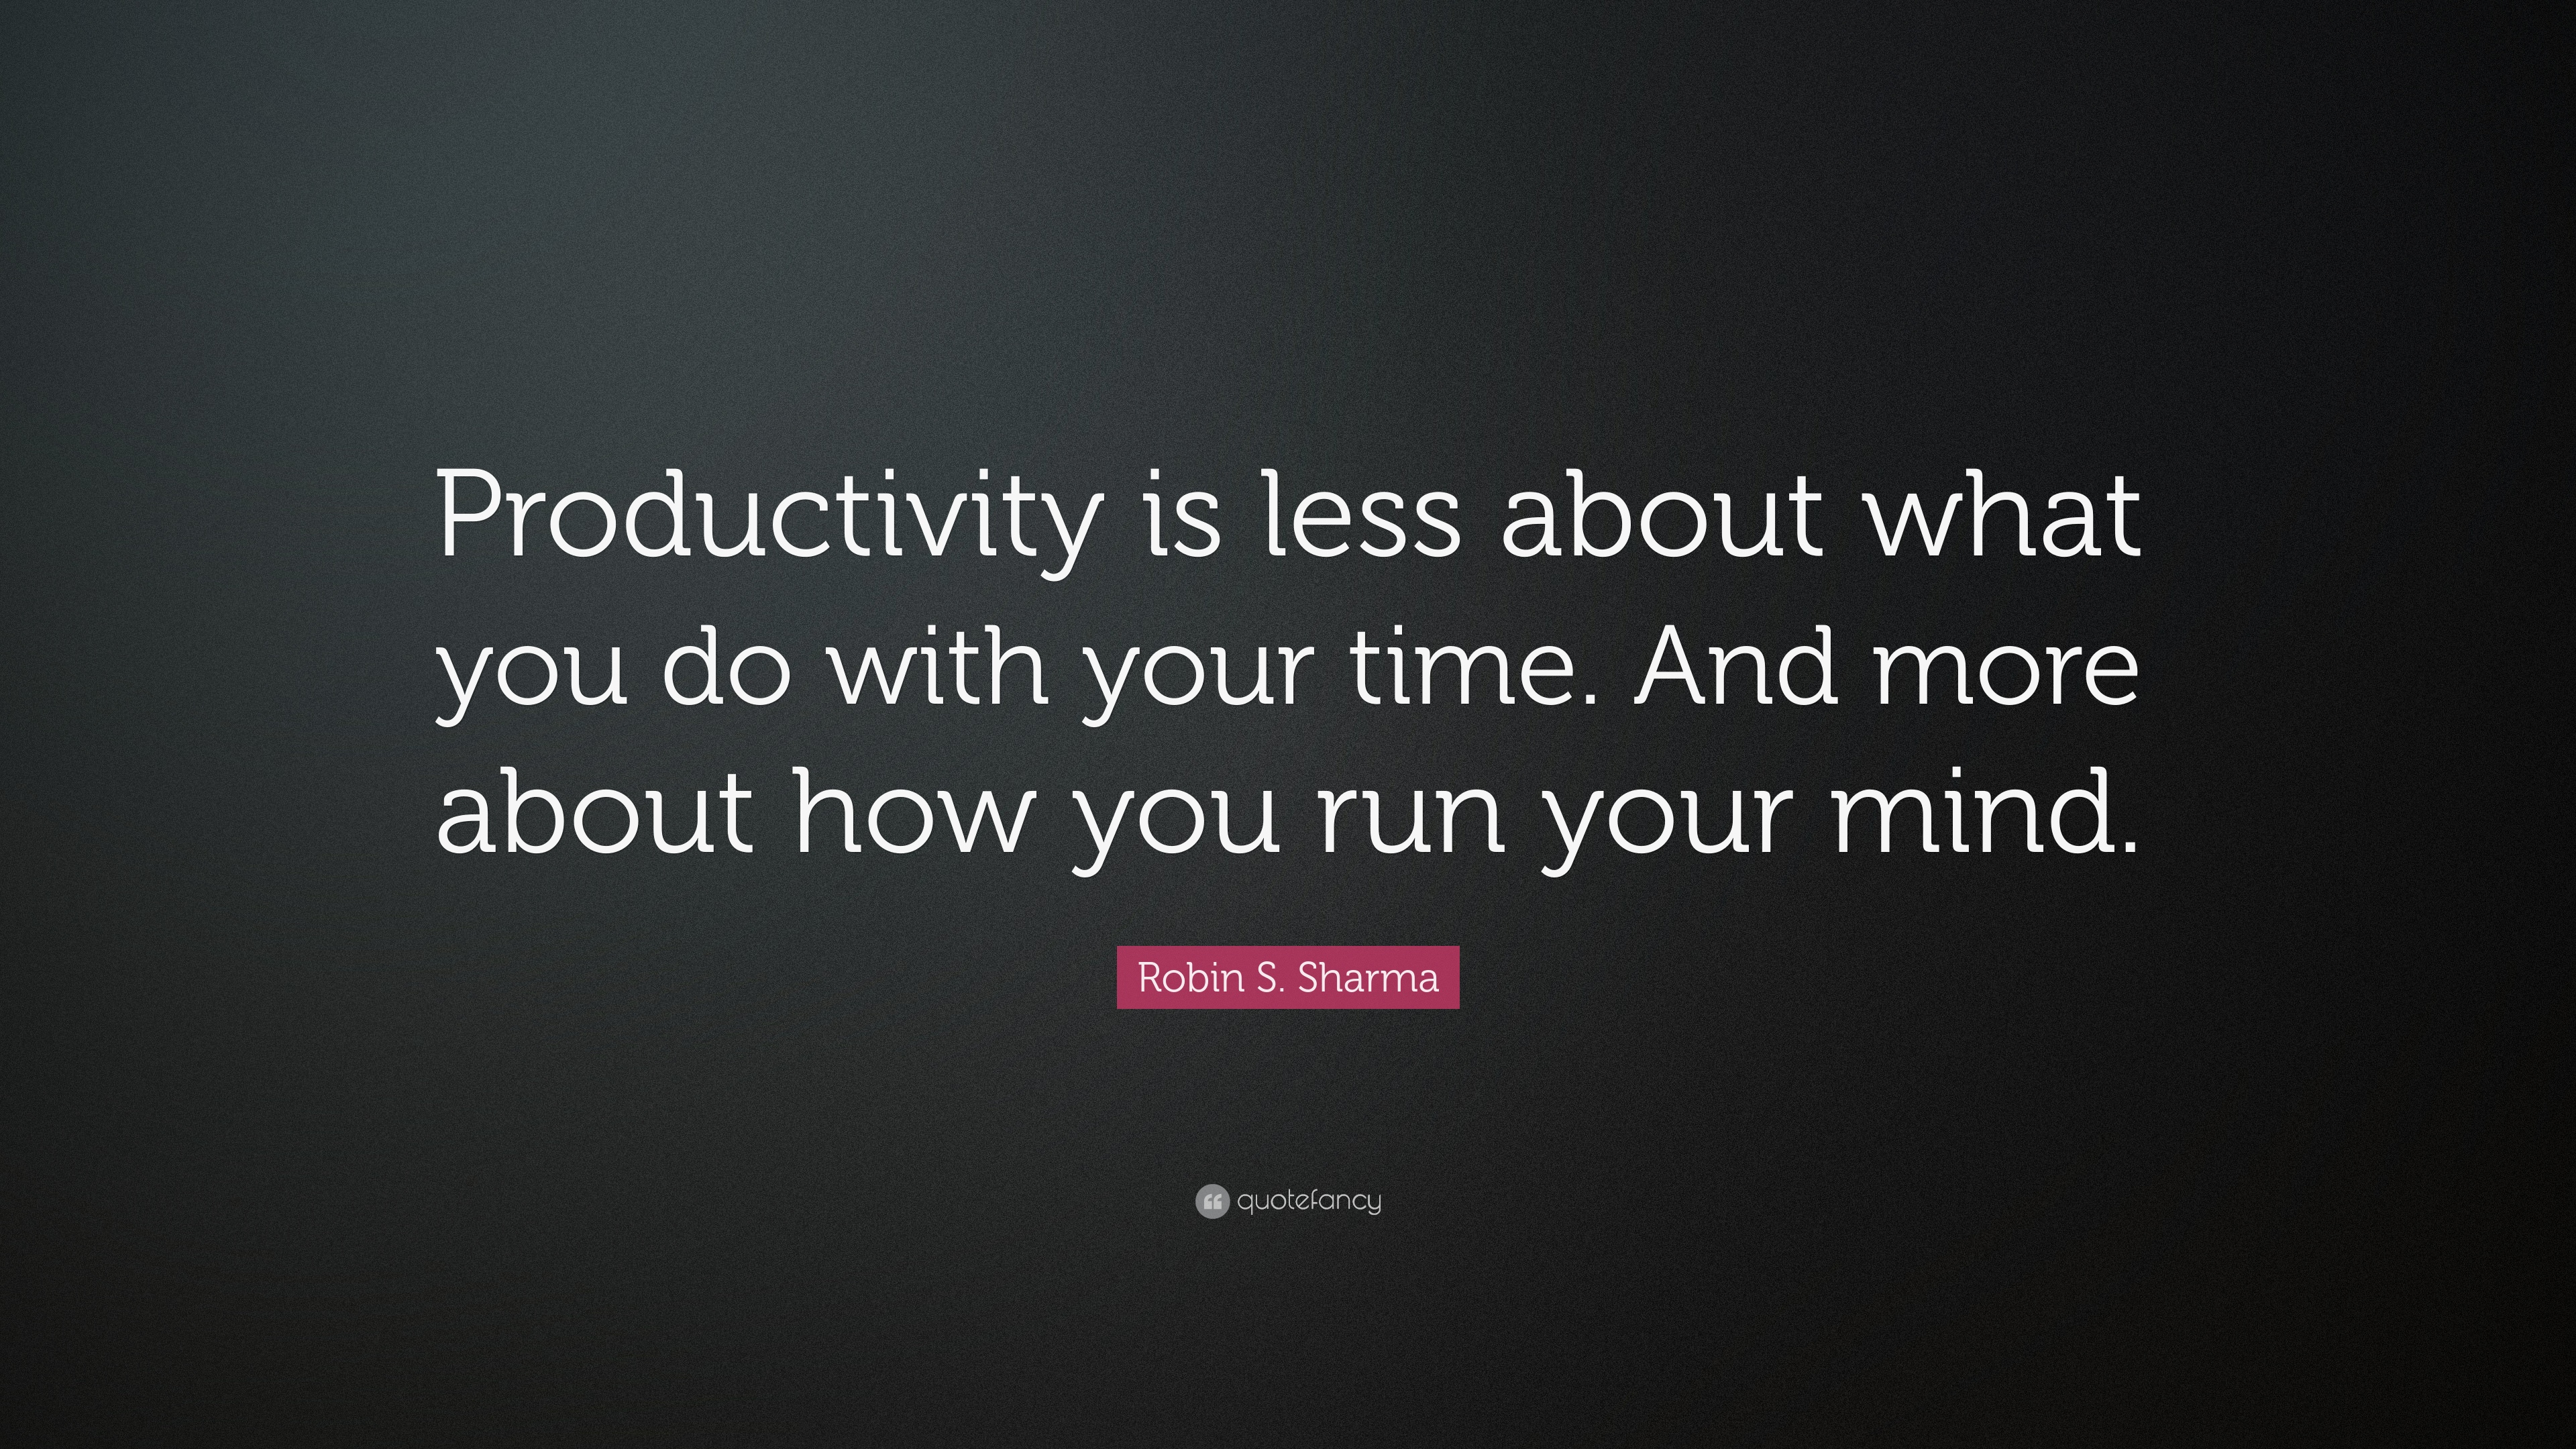 Productivity Quotes Productivity Quotes (33 wallpapers)   Quotefancy Productivity Quotes